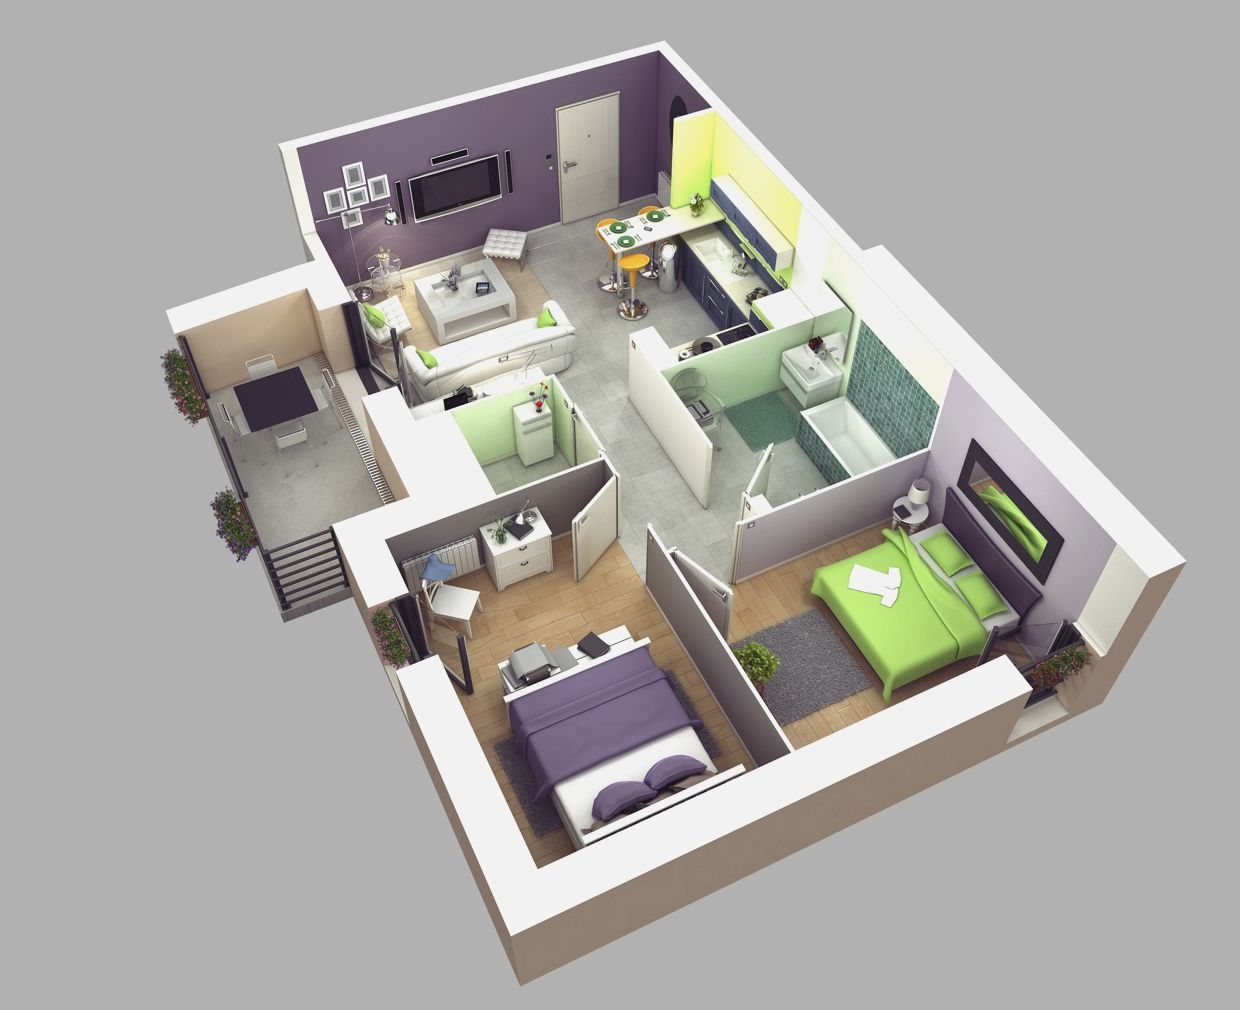 1 bedroom house plans 3d just the two of us apartment House plan 3d view